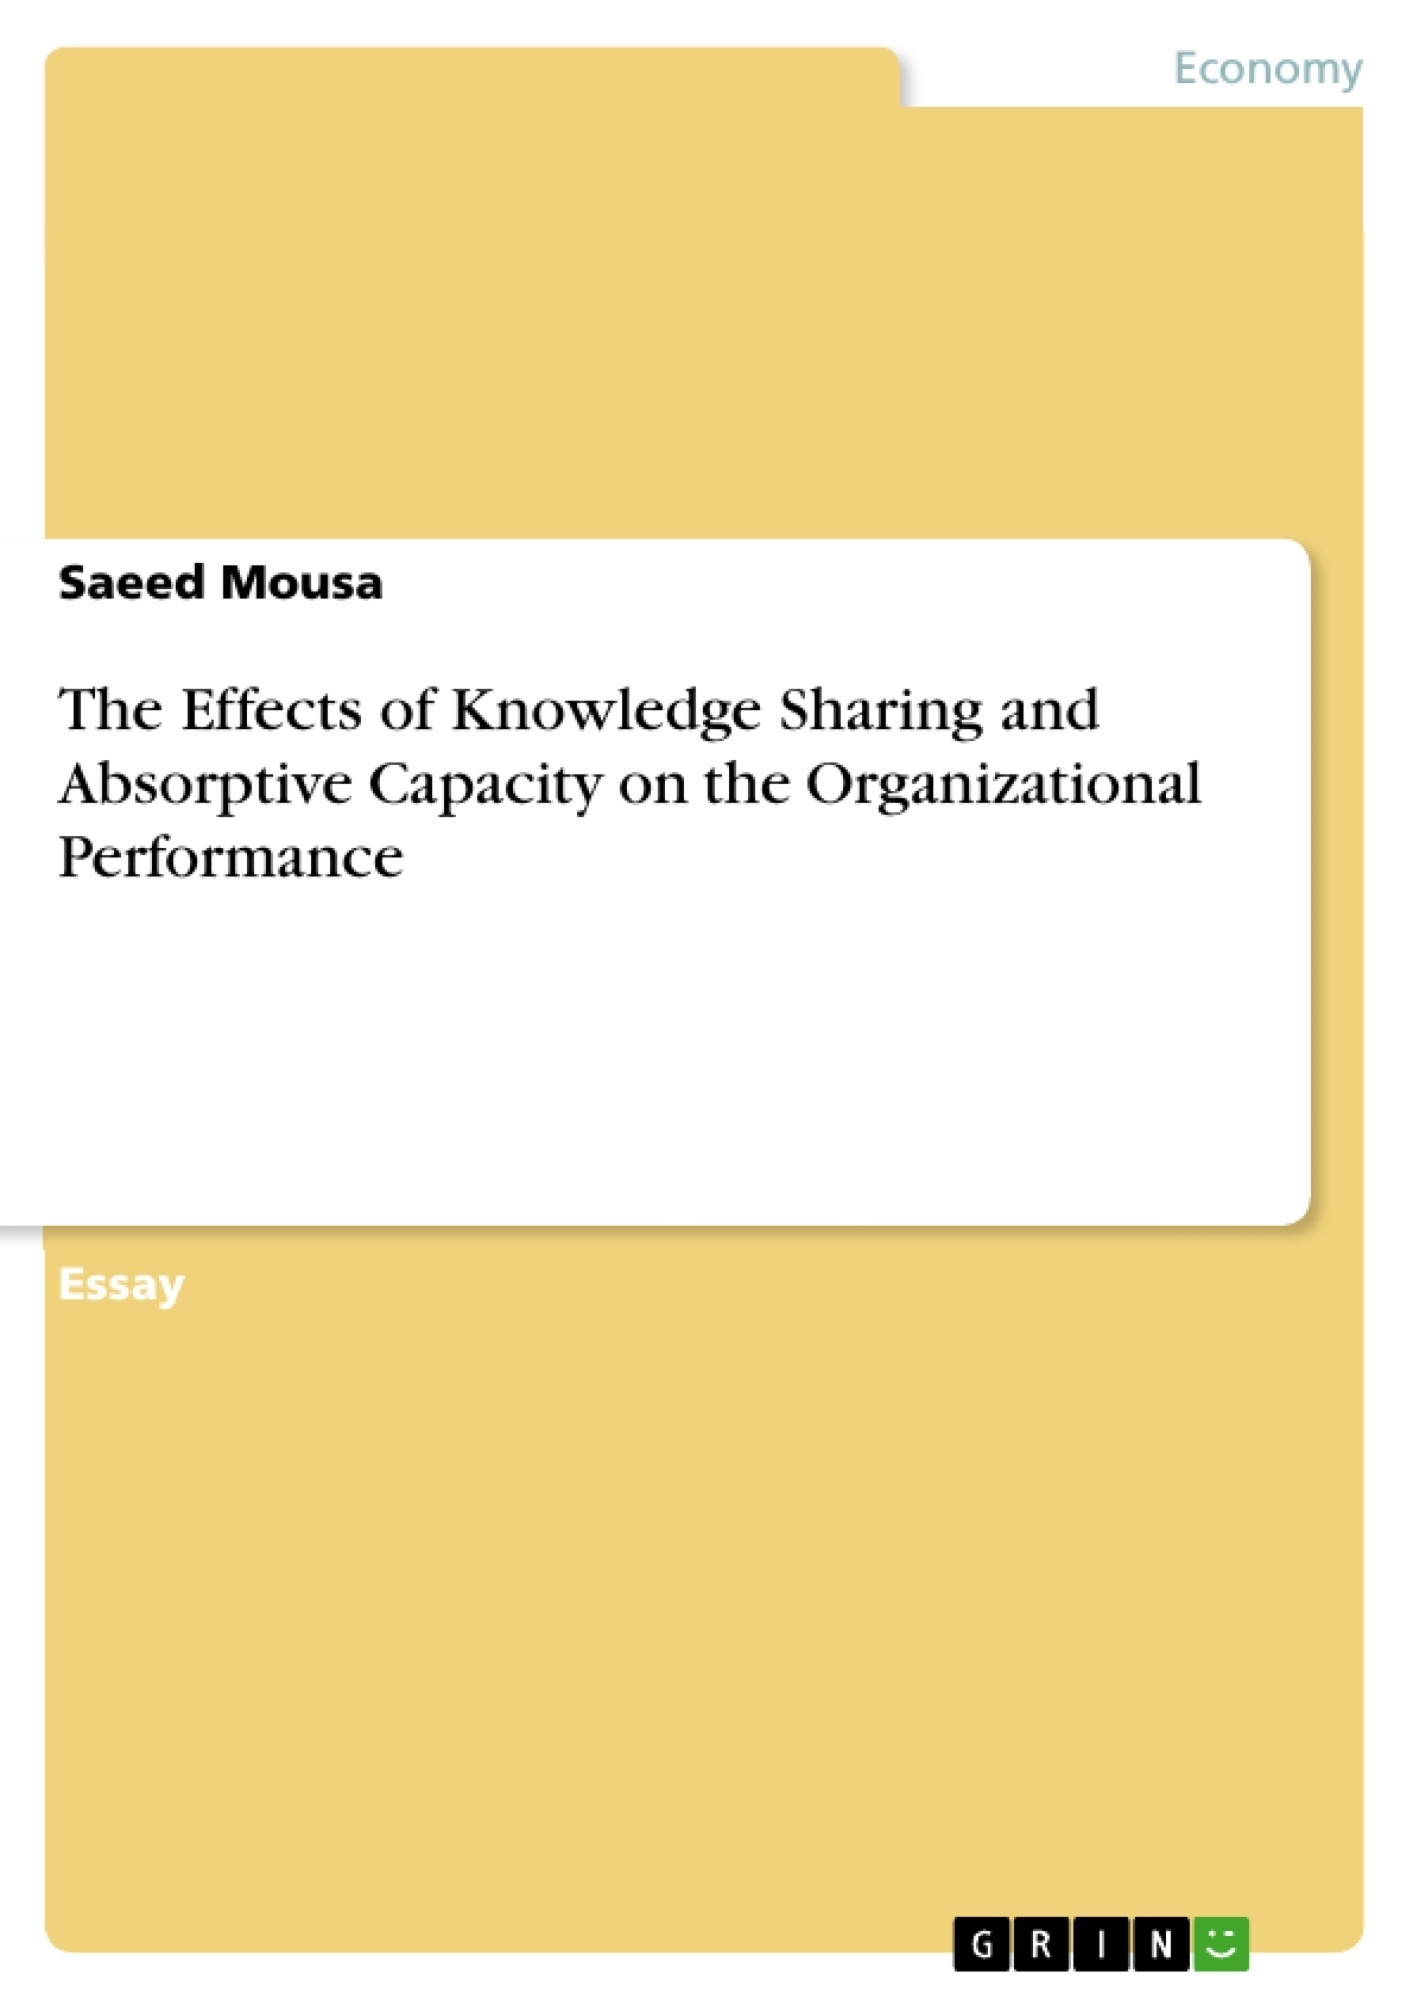 Title: The Effects of Knowledge Sharing and Absorptive Capacity on the Organizational Performance